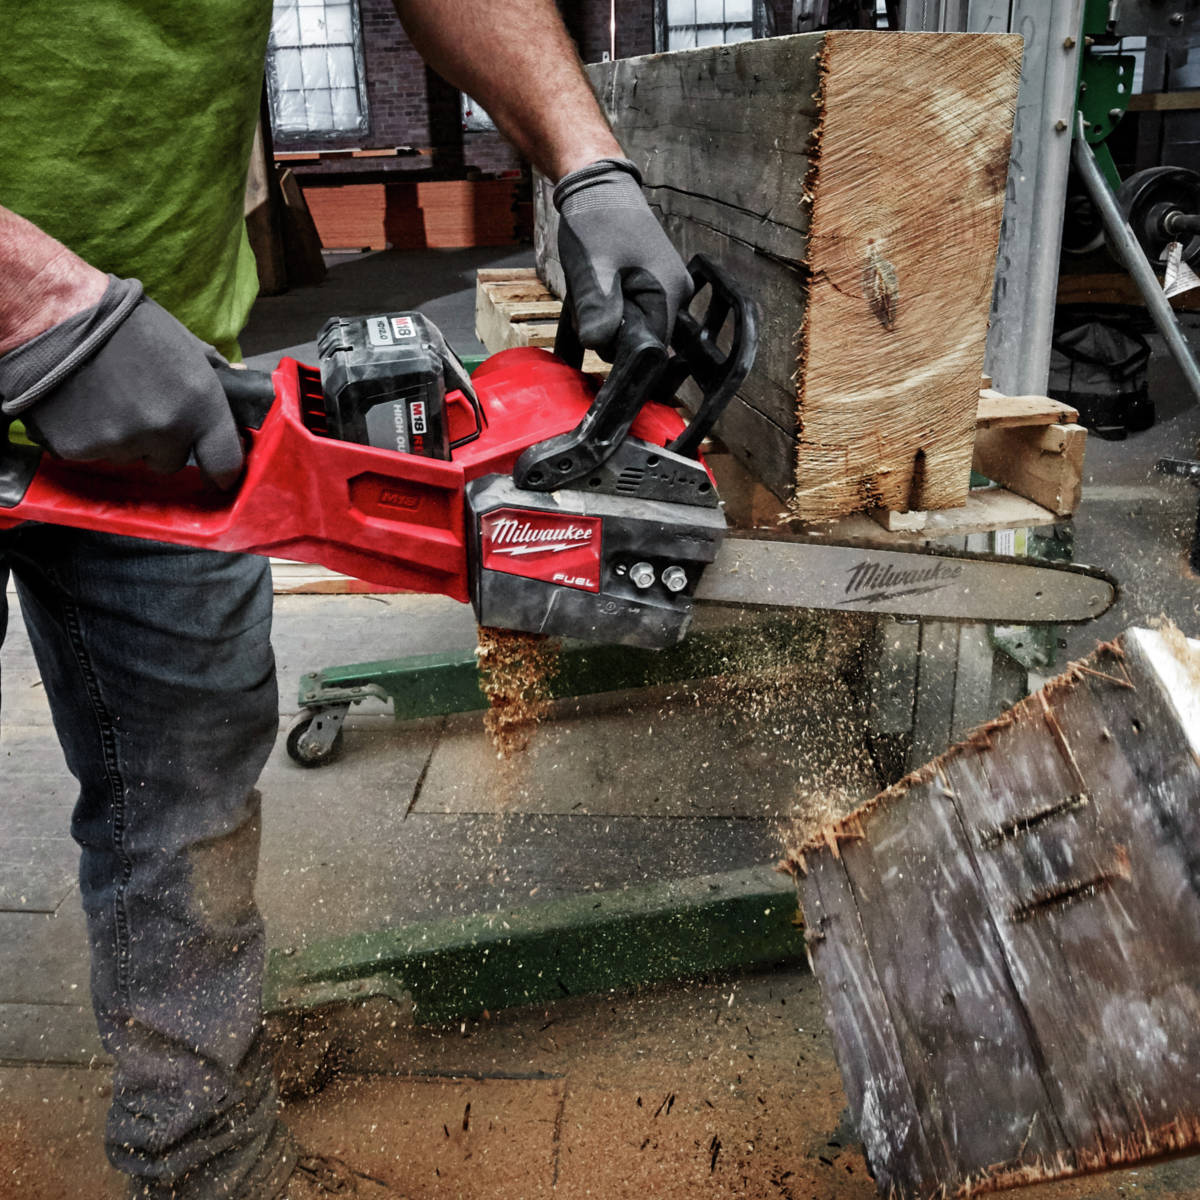 M18 FUEL 16 in. Chainsaw gets up to 150 cuts per charge